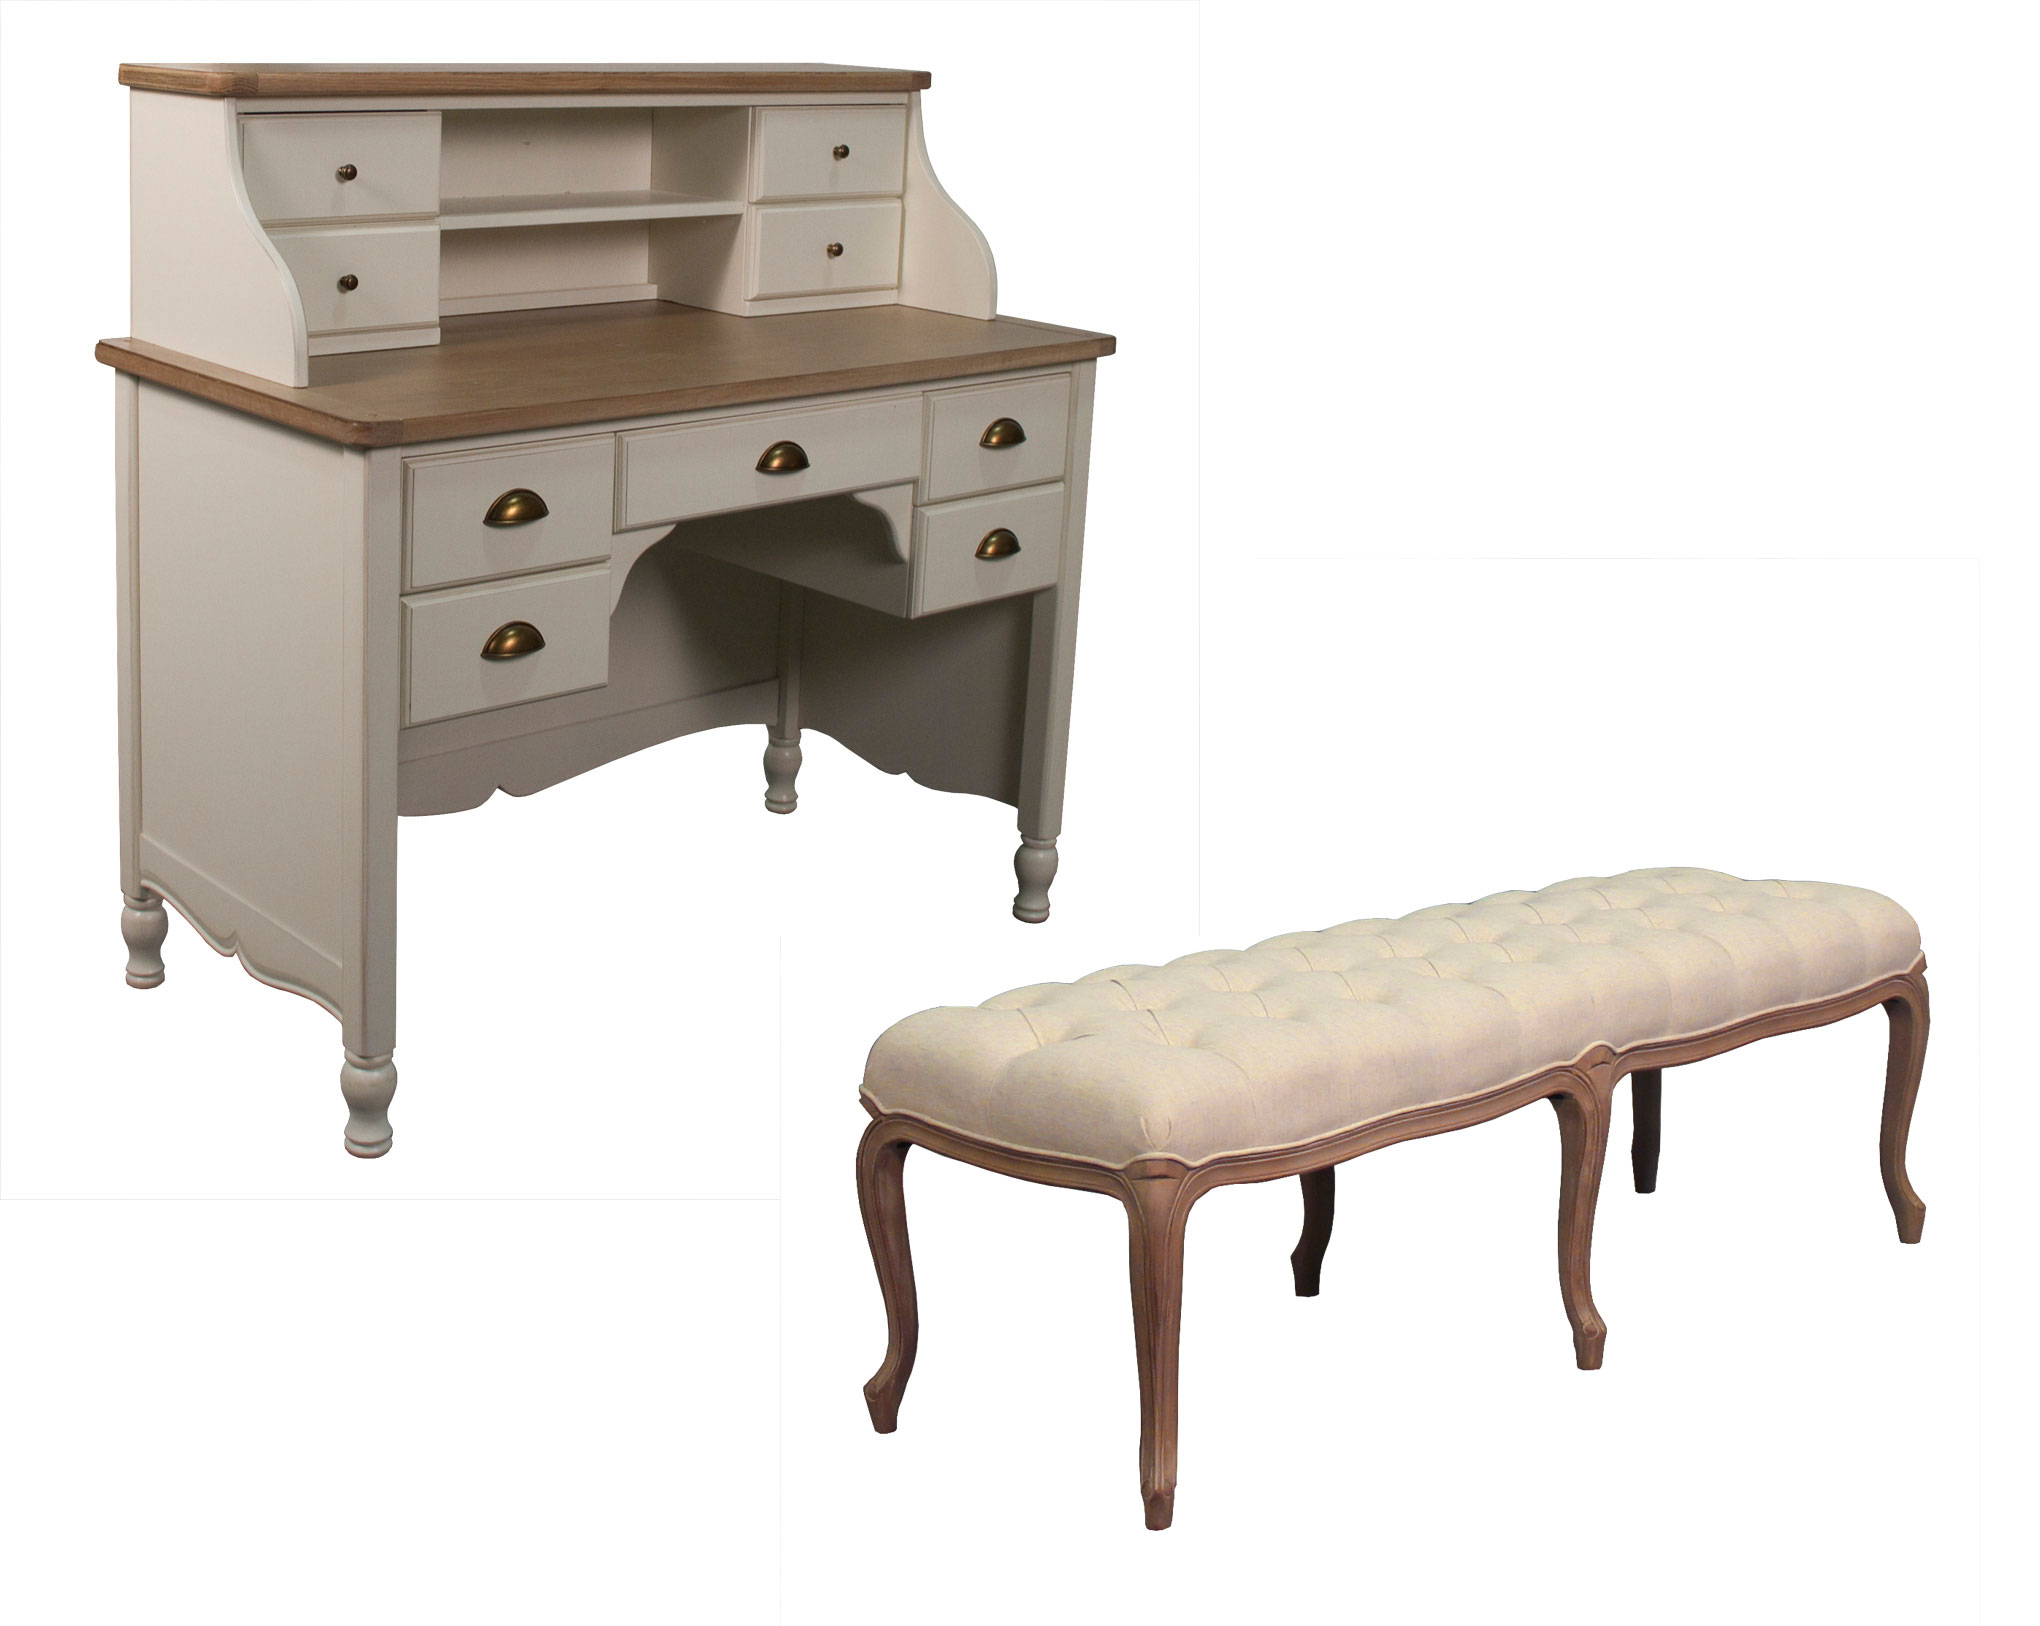 Minerva Beauty Added Two New Pieces to French Provincial Salon Furniture Collection – And More Is On The Way